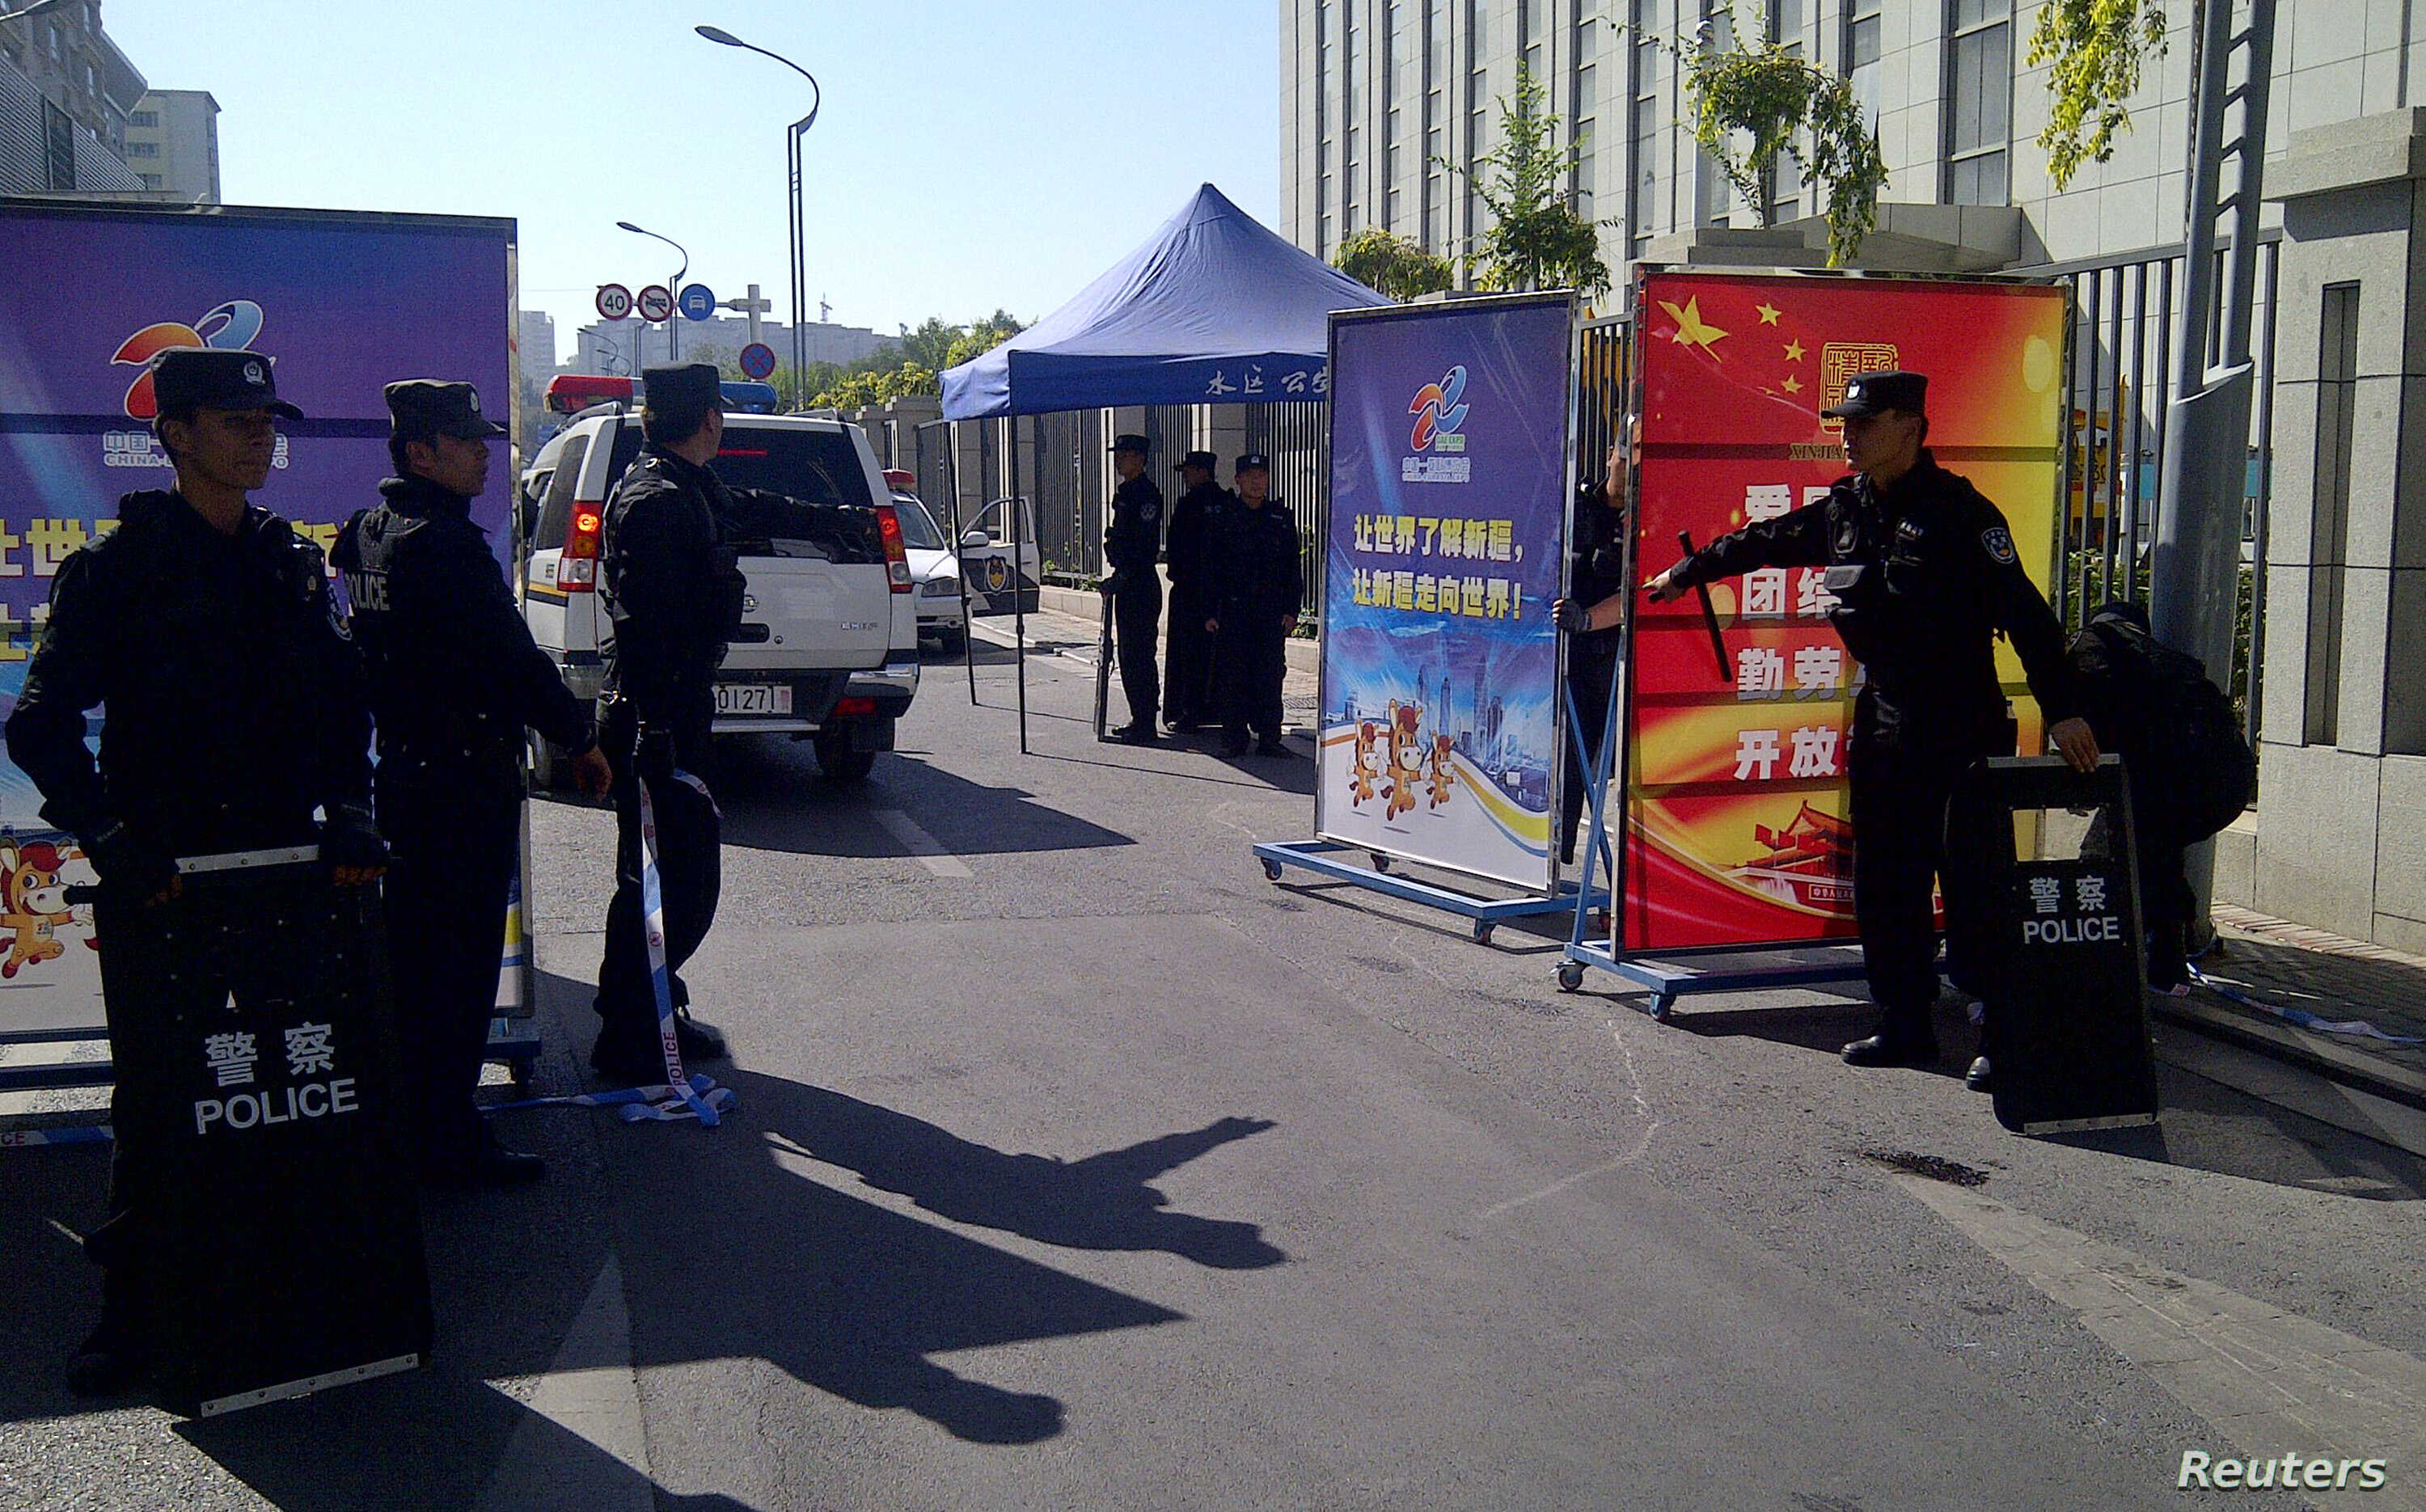 Police with riot gear guard a checkpoint on a road near a courthouse where ethnic Uighur academic Ilham Tohti's trial is taking place in Urumqi, Xinjiang Uighur Autonomous Region, Sept. 17, 2014.